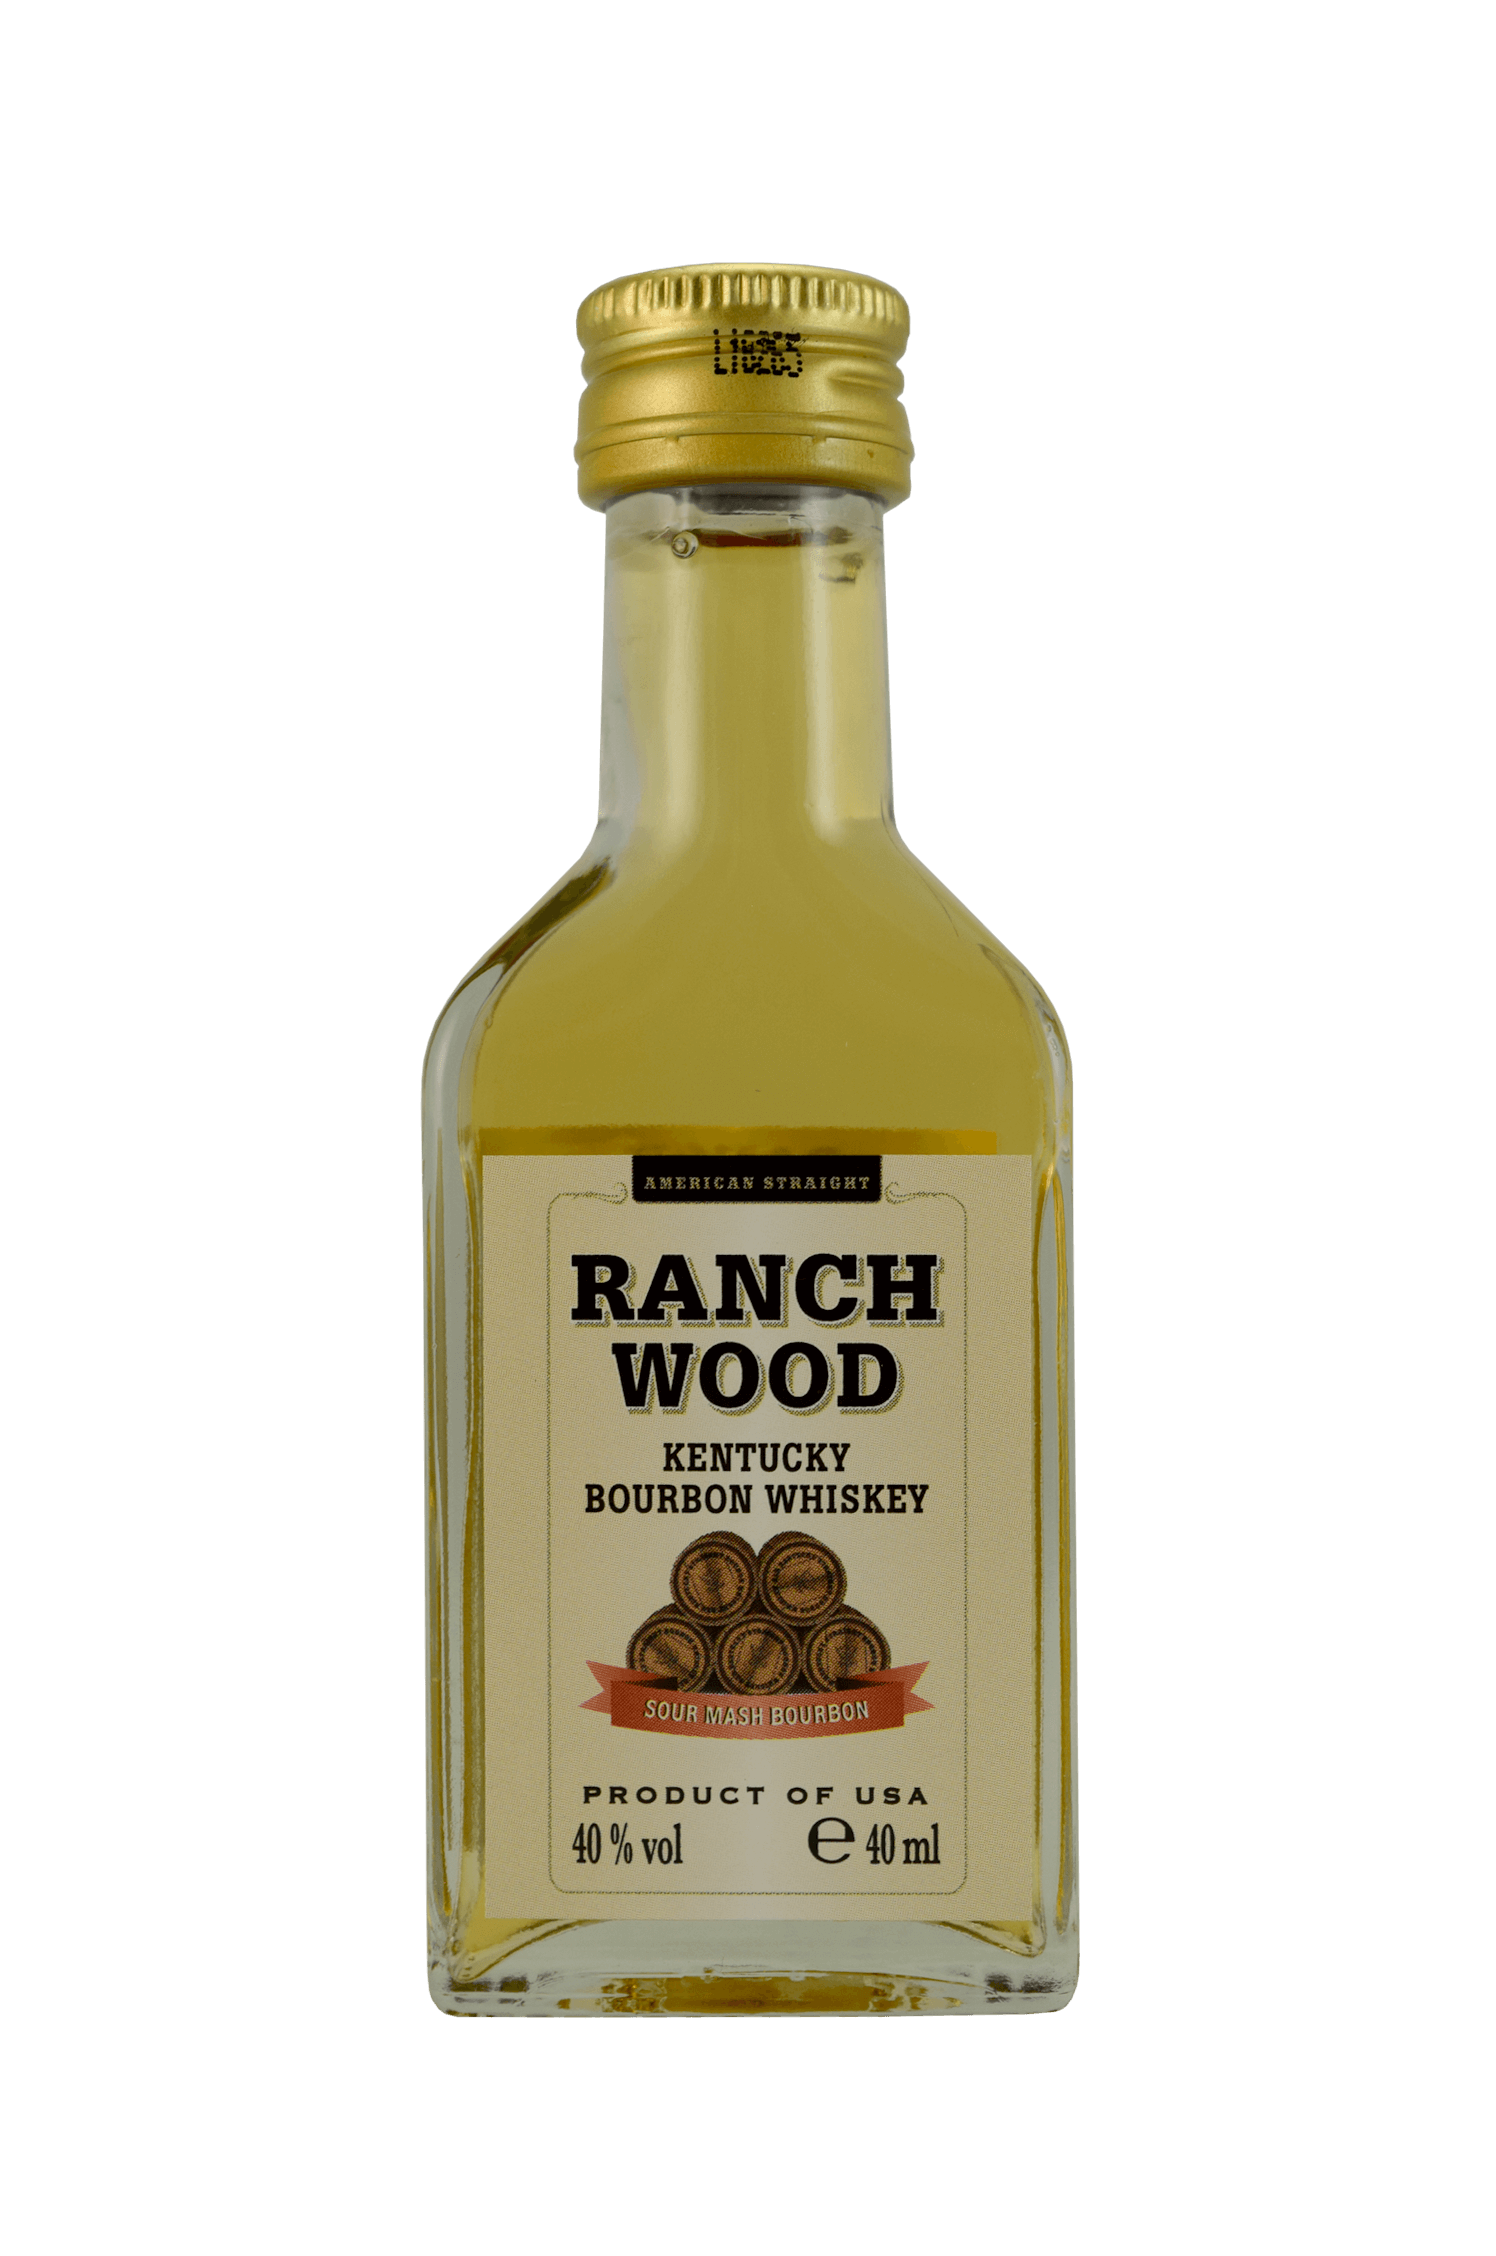 Ranch Wood Bourbon Whiskey